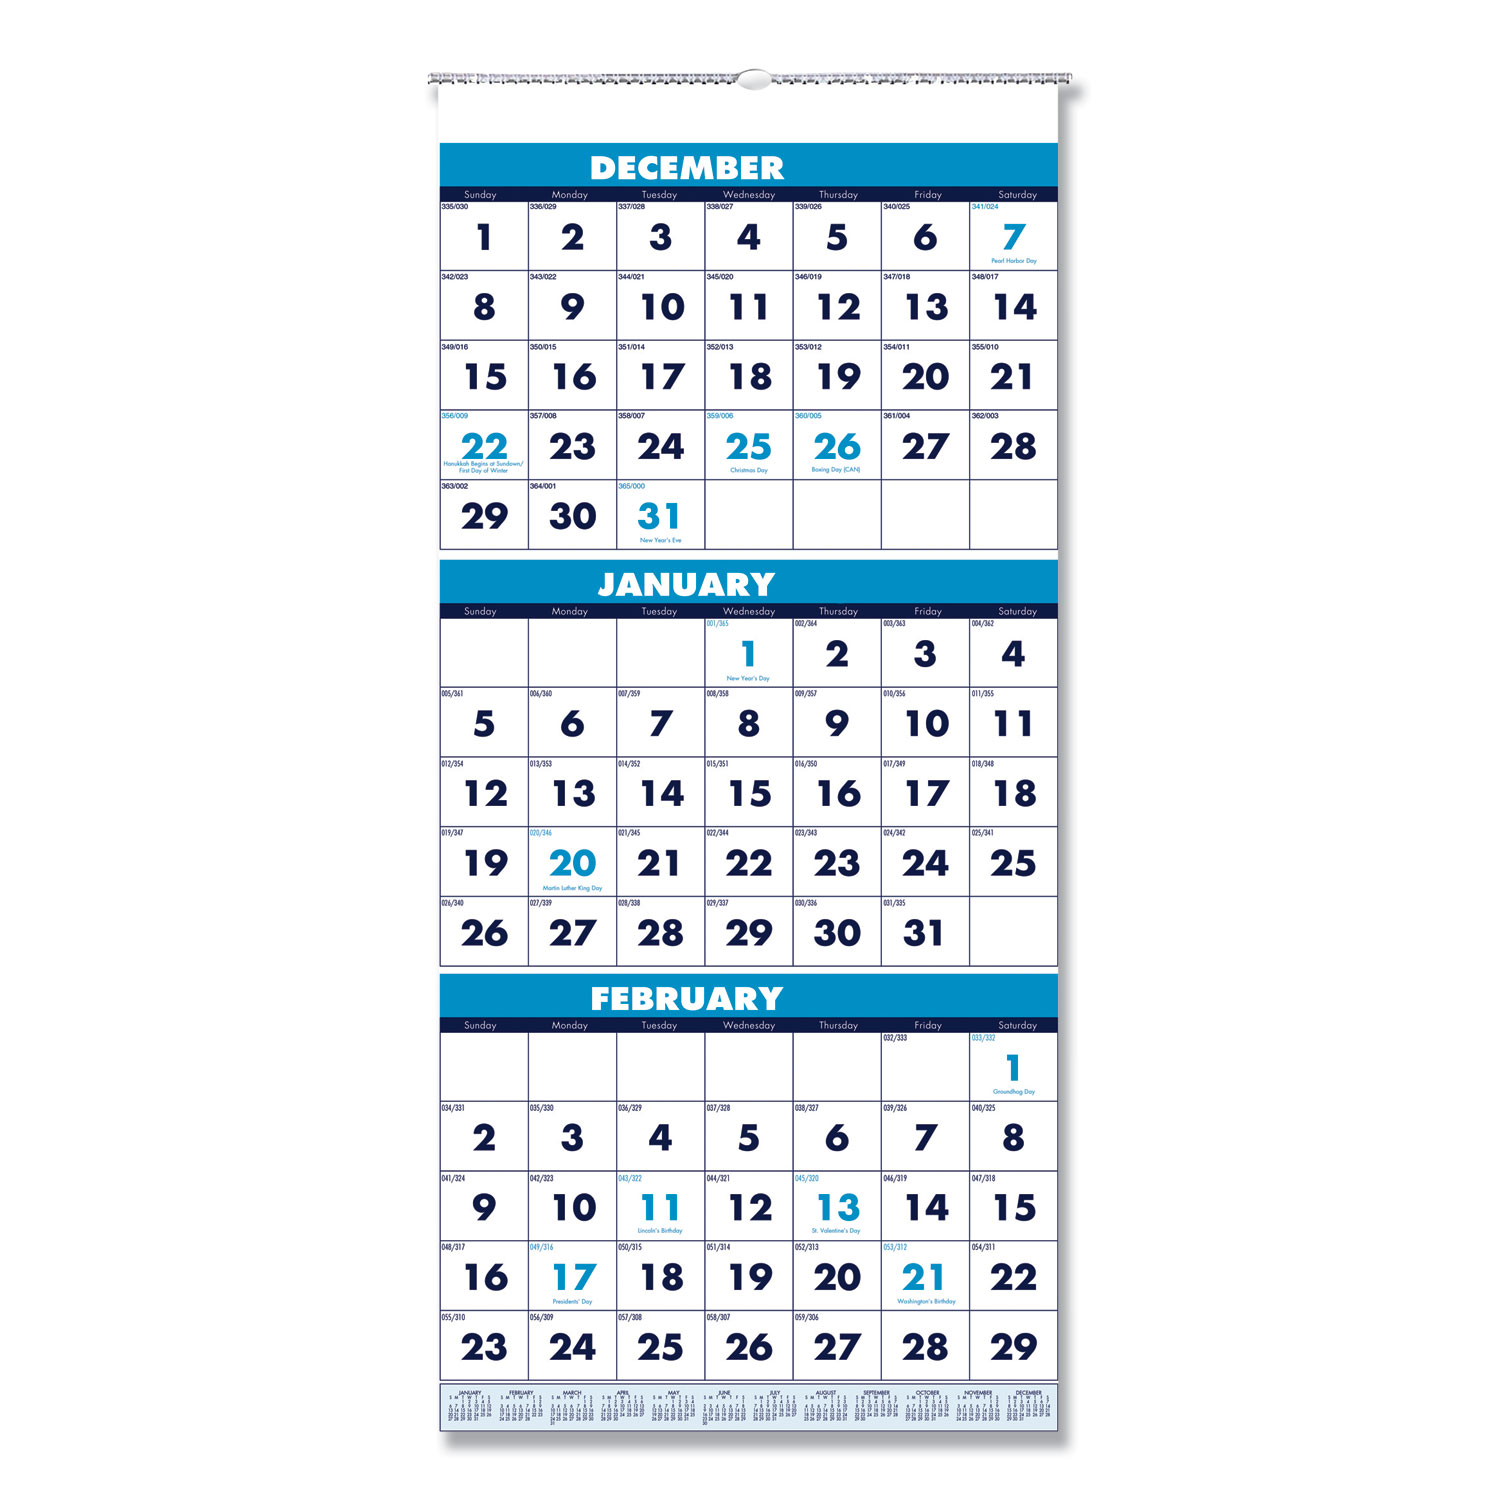 Recycled Three-Month Format Wall Calendar, 12.25 x 26, 14-Month, 2020-2022